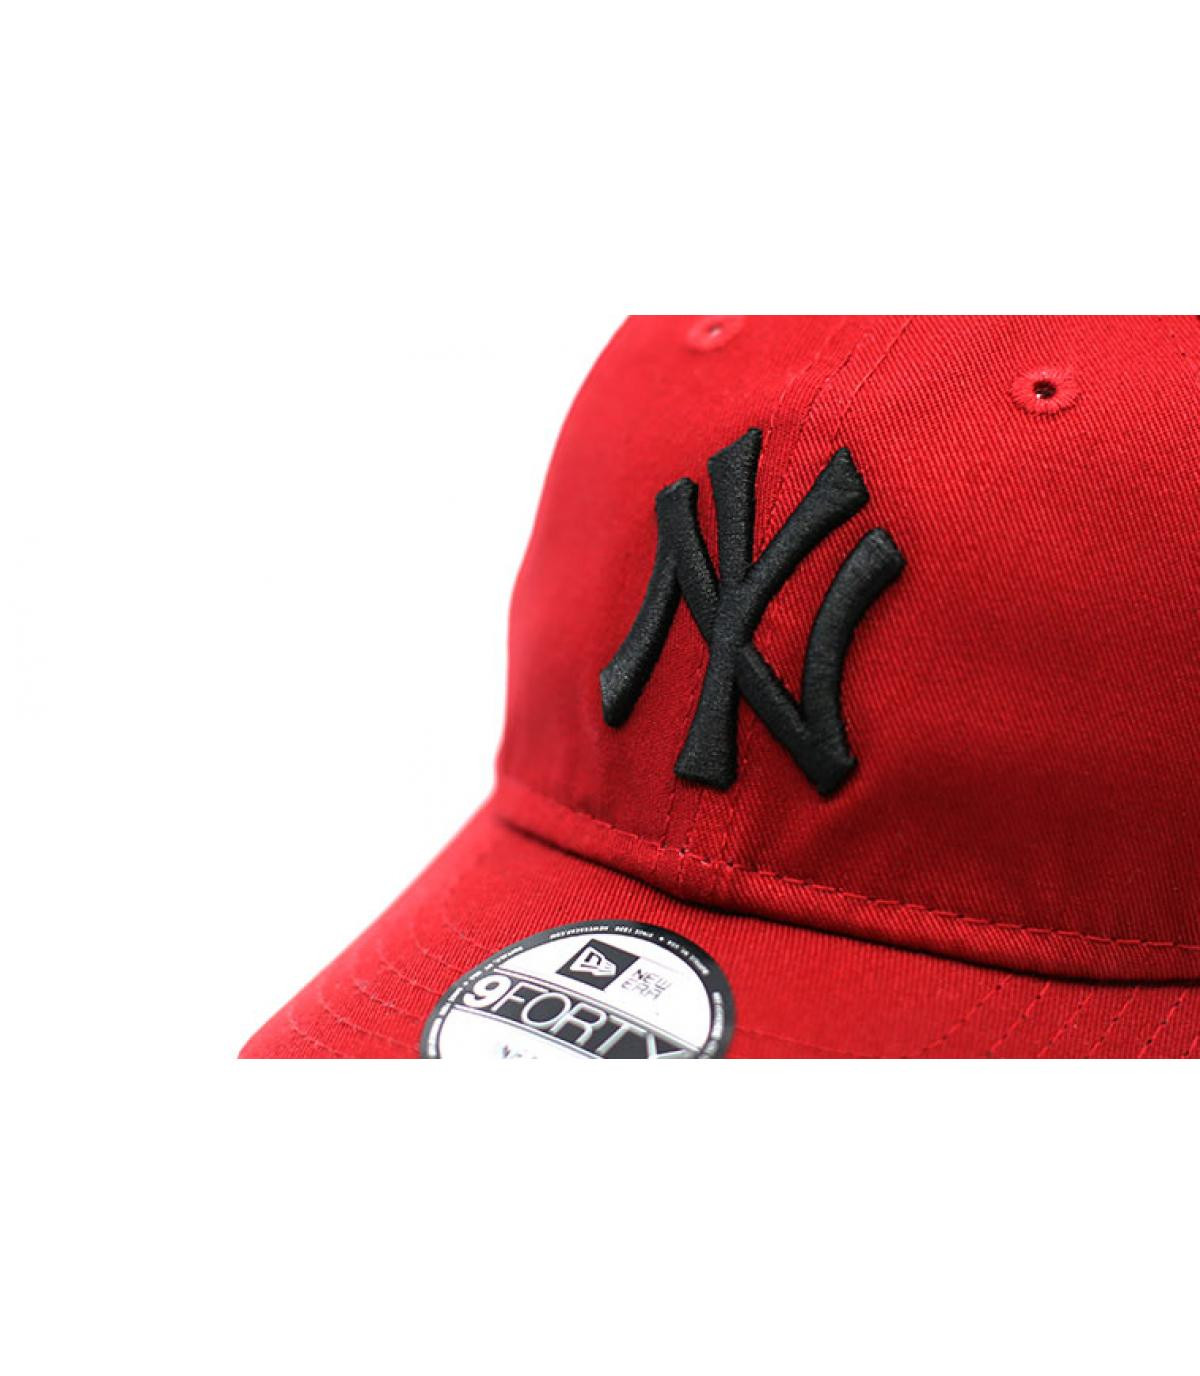 Détails Casquette Baby League Ess NY 9Forty hot red black - image 3